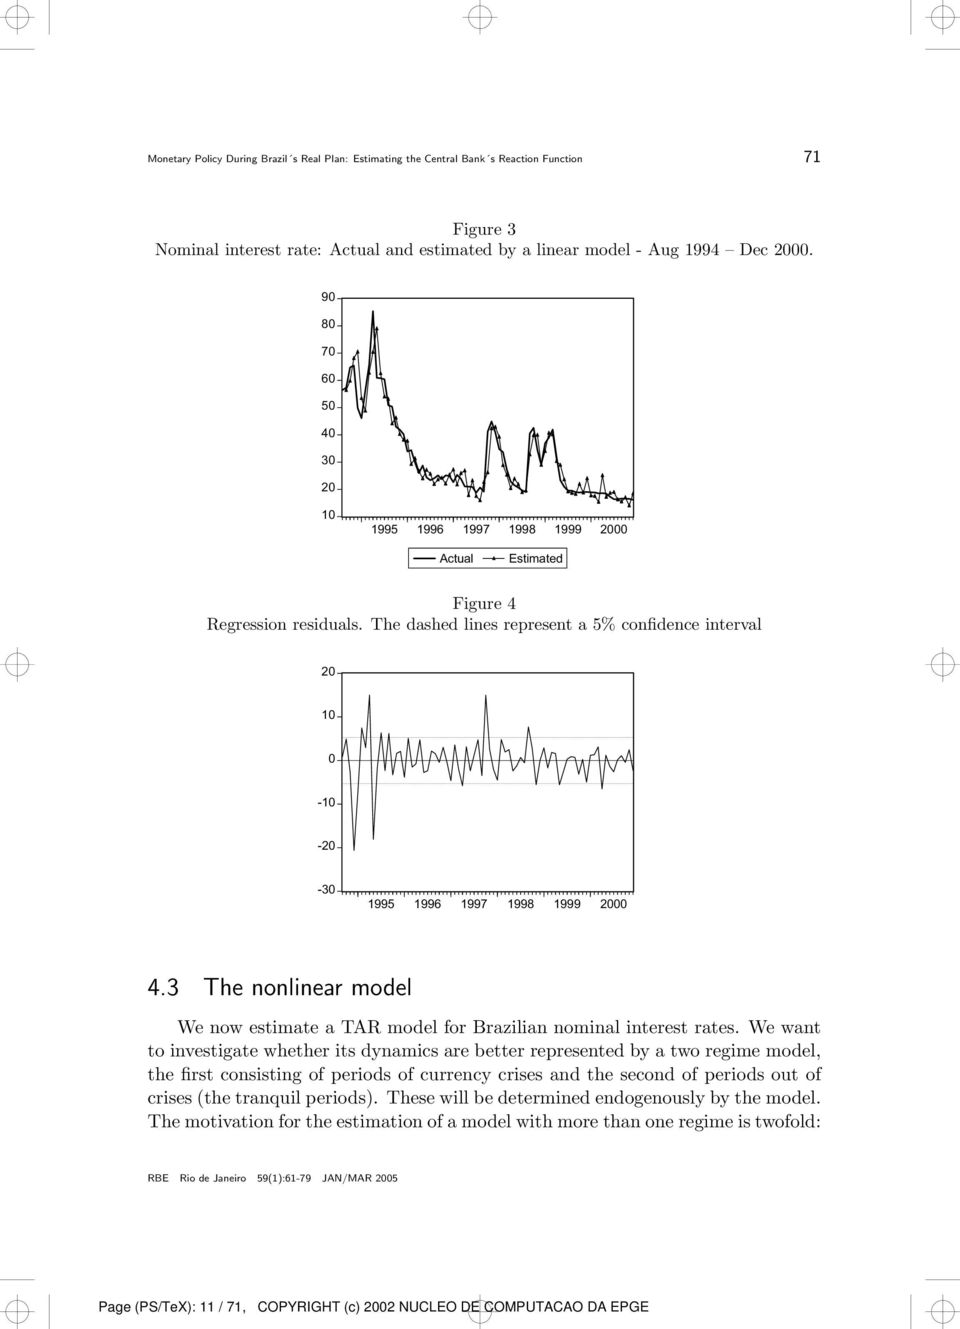 3 The nonlinear model We now estimate a TAR model for Brazilian nominal interest rates.